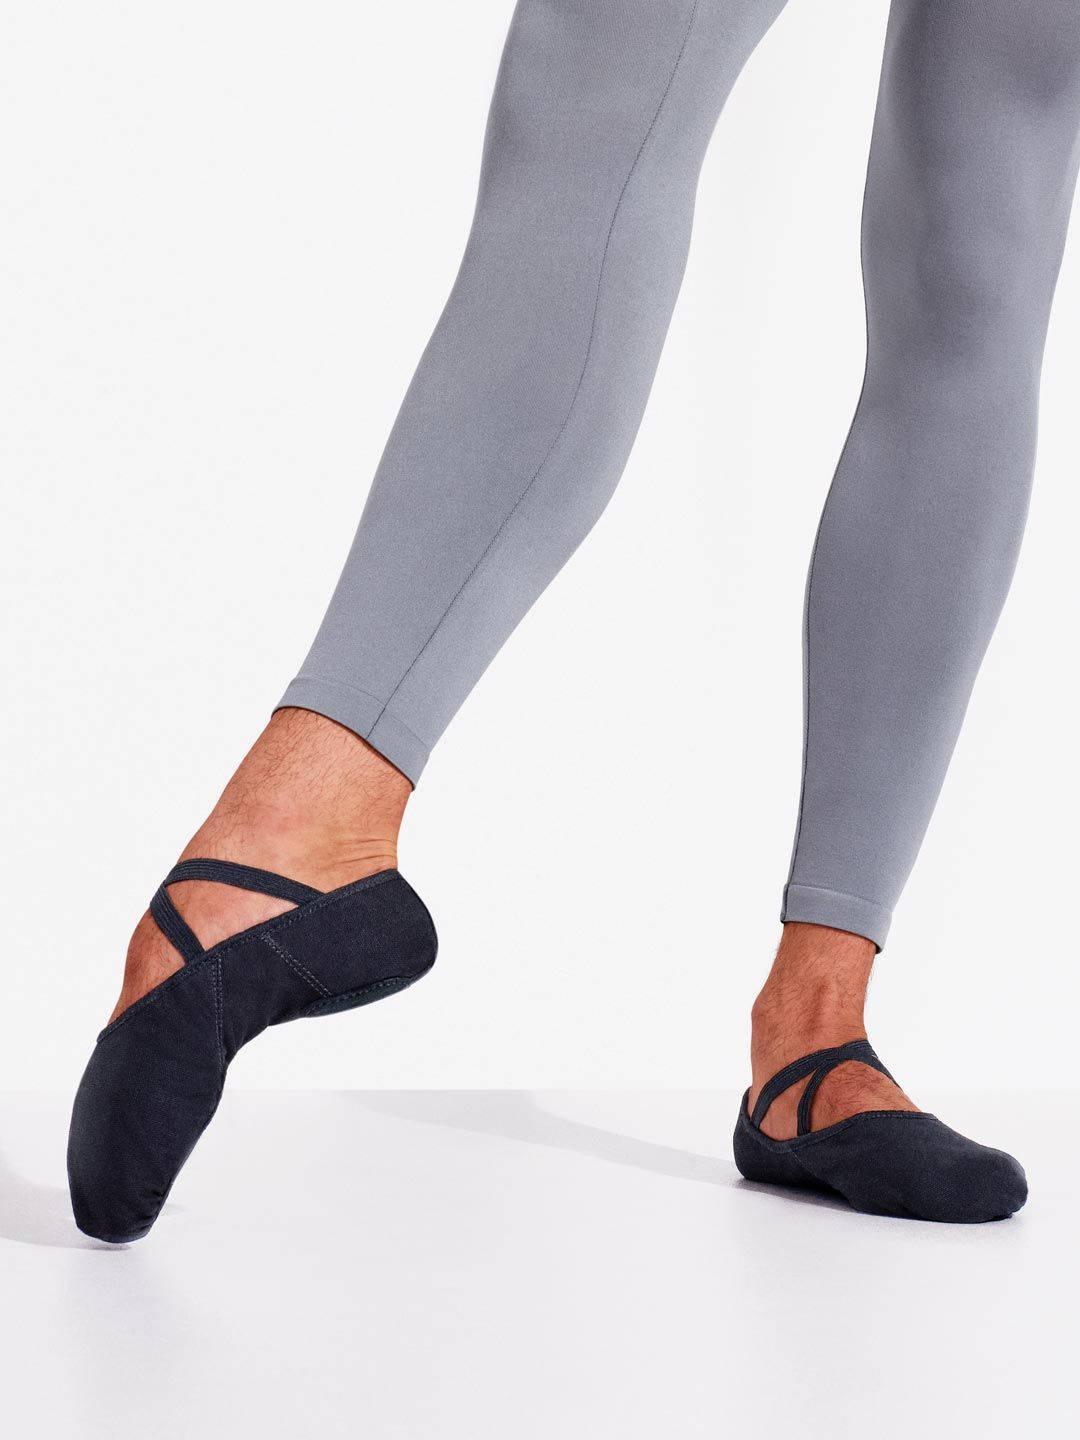 Stretch Canvas Romeo Ballet Shoe for